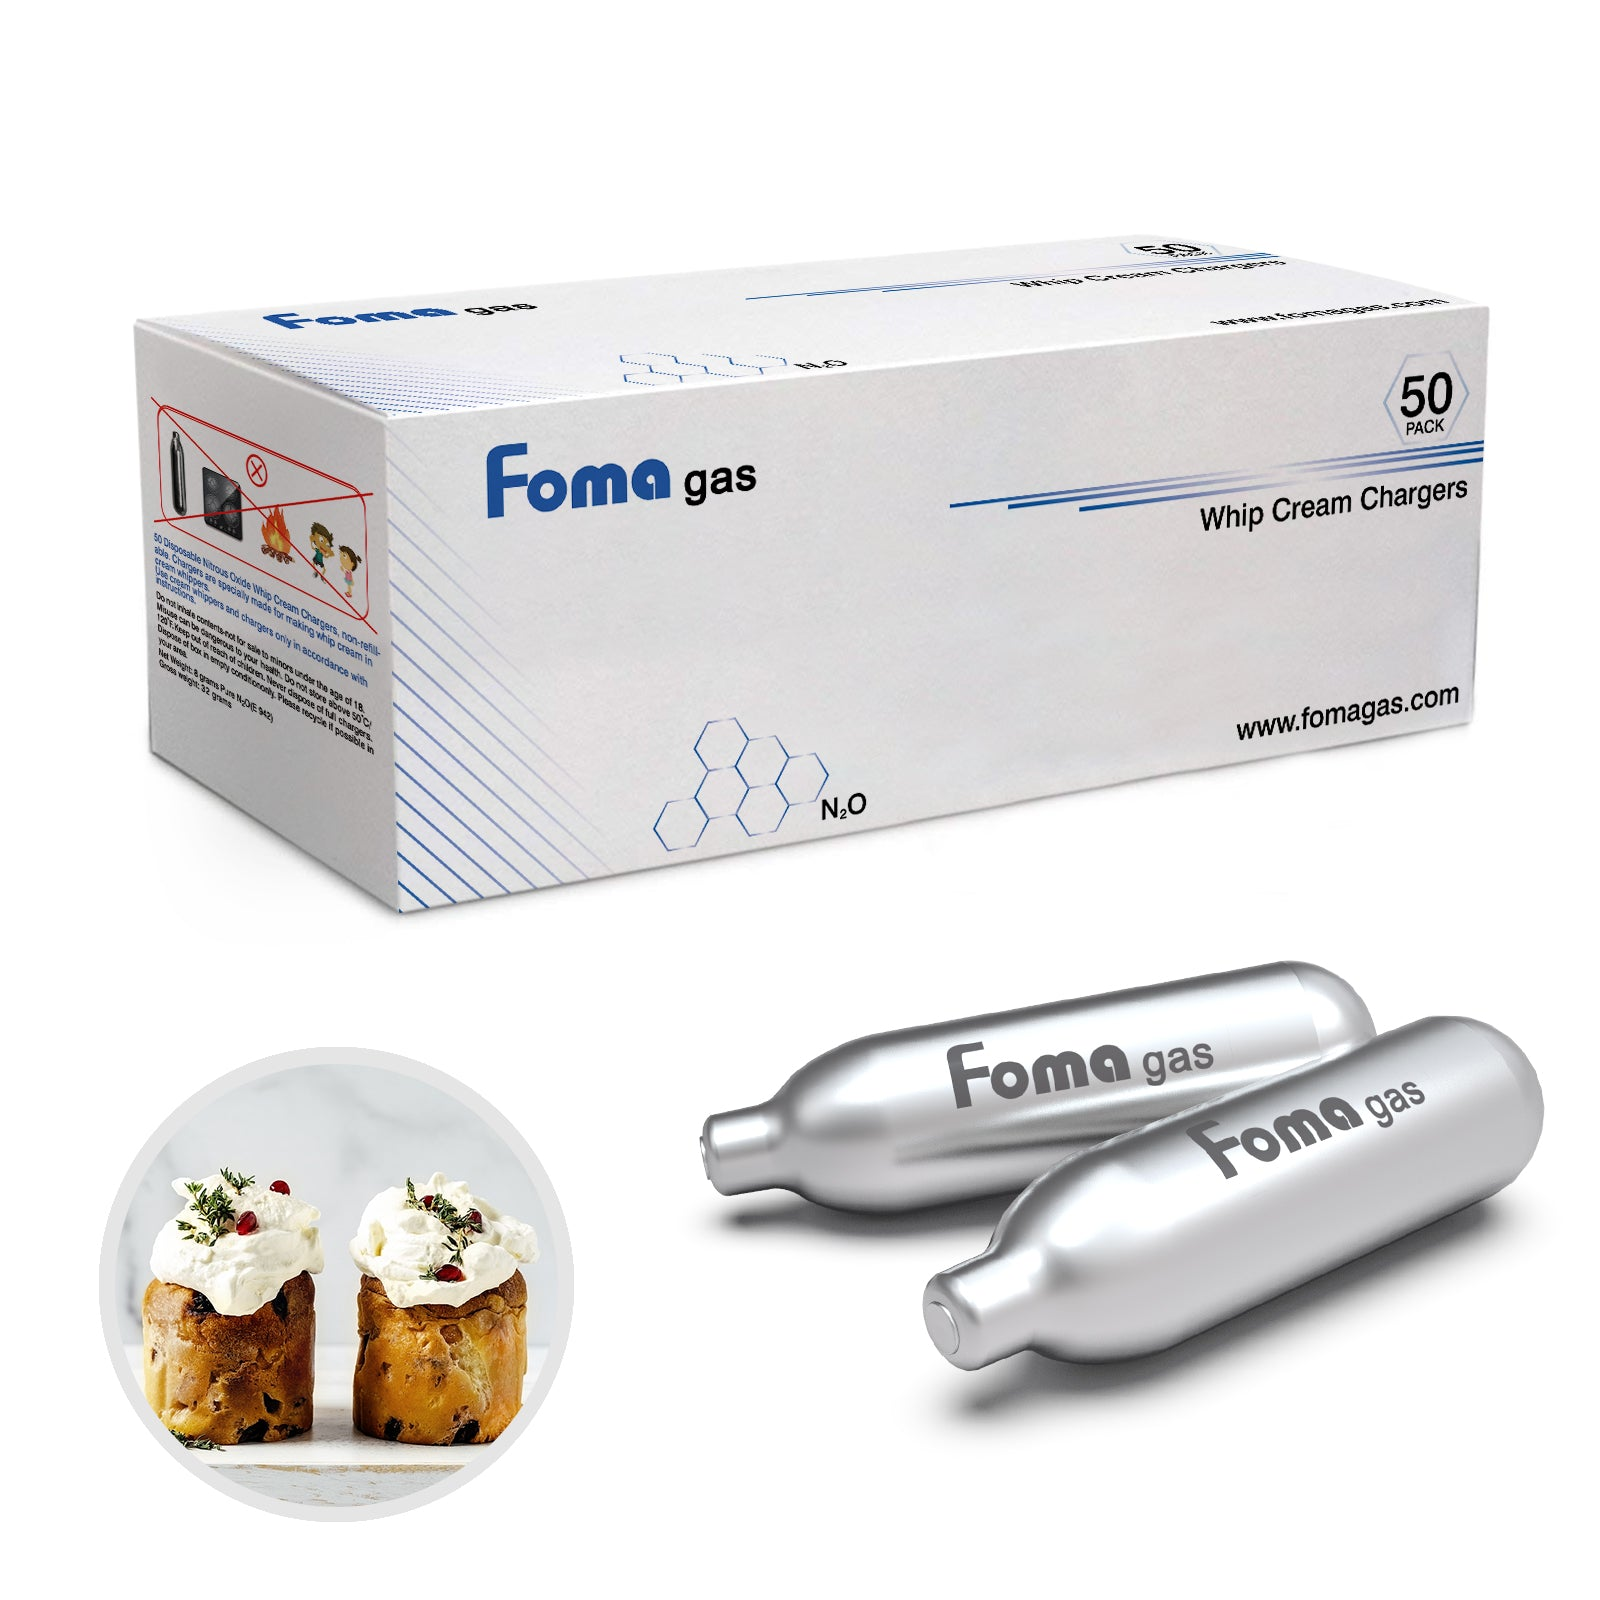 FomaGas 8g N2O Whipped Cream Chargers 300 Packs